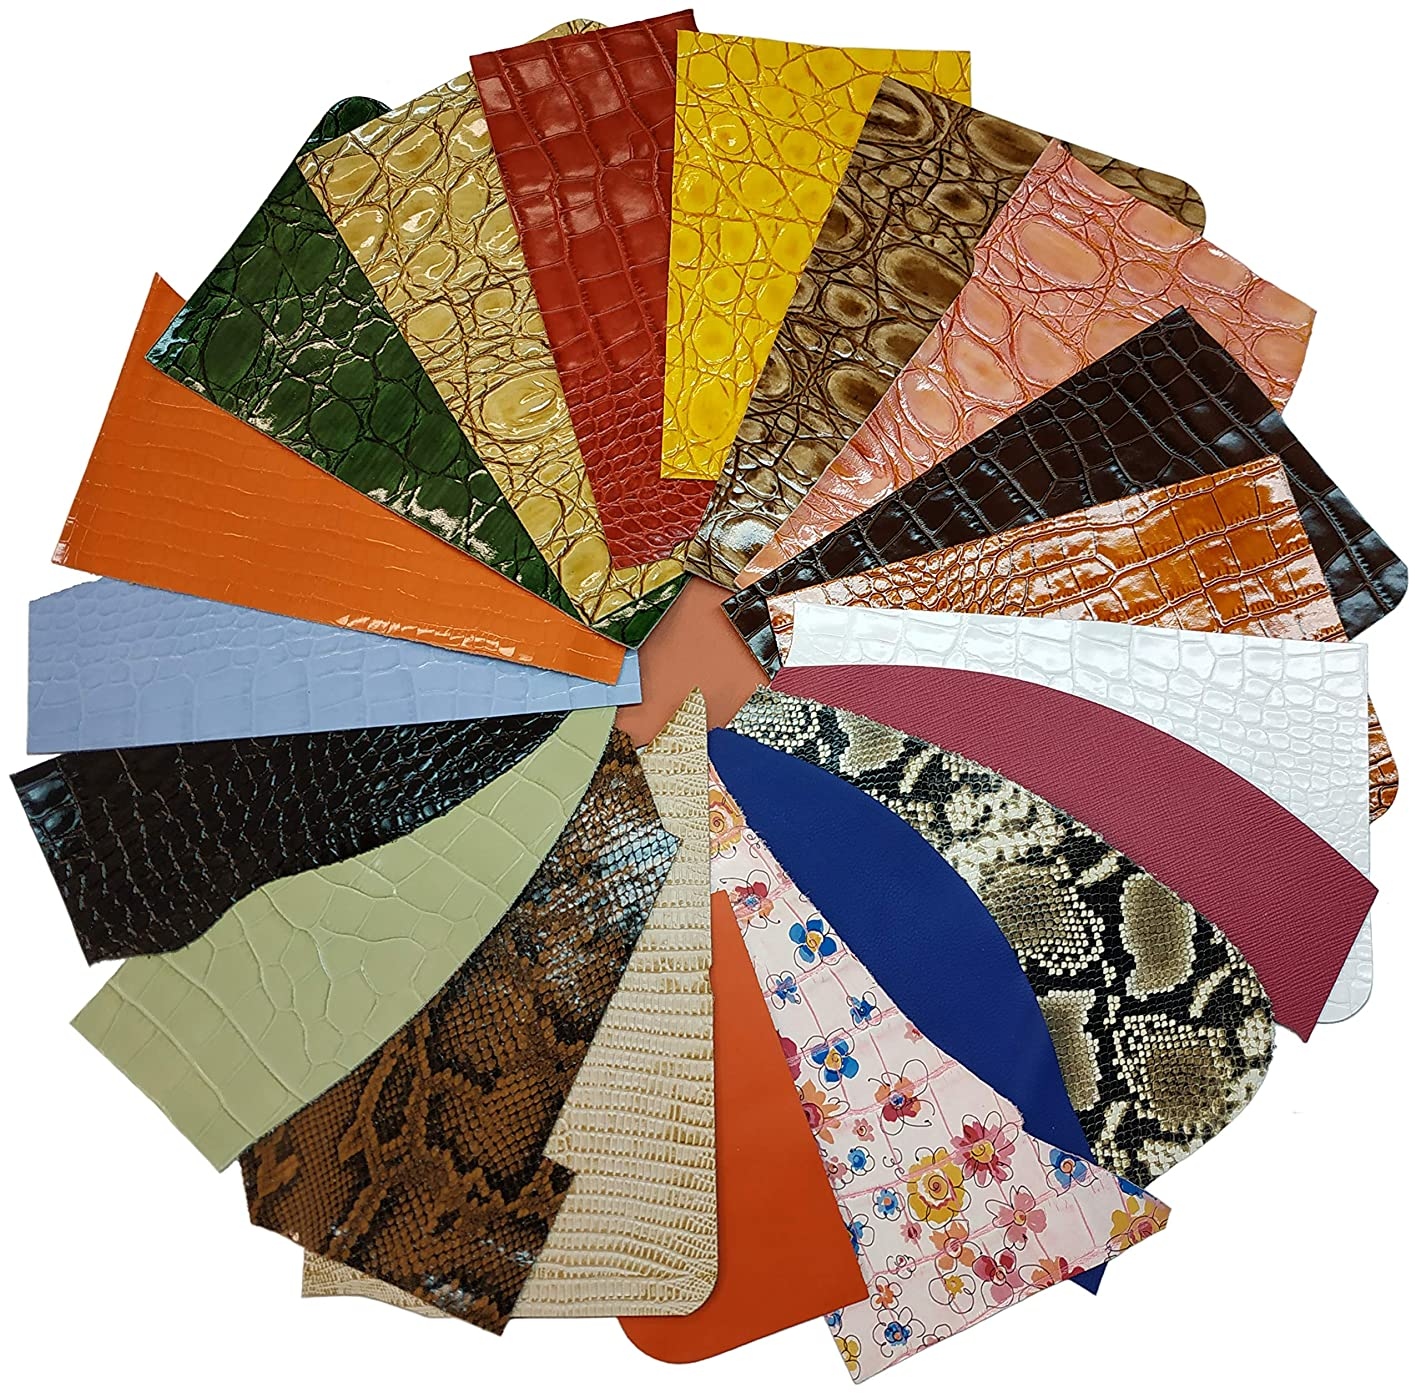 Upon Leather - Embossed and Printed Leather Scraps 1 Pound Small & Medium Pieces | 6-7 Square Feet Cowhide remnants for Crafts, Earrings, Jewelry | More Than 15 Pieces of Bright Happy Leather Colors.